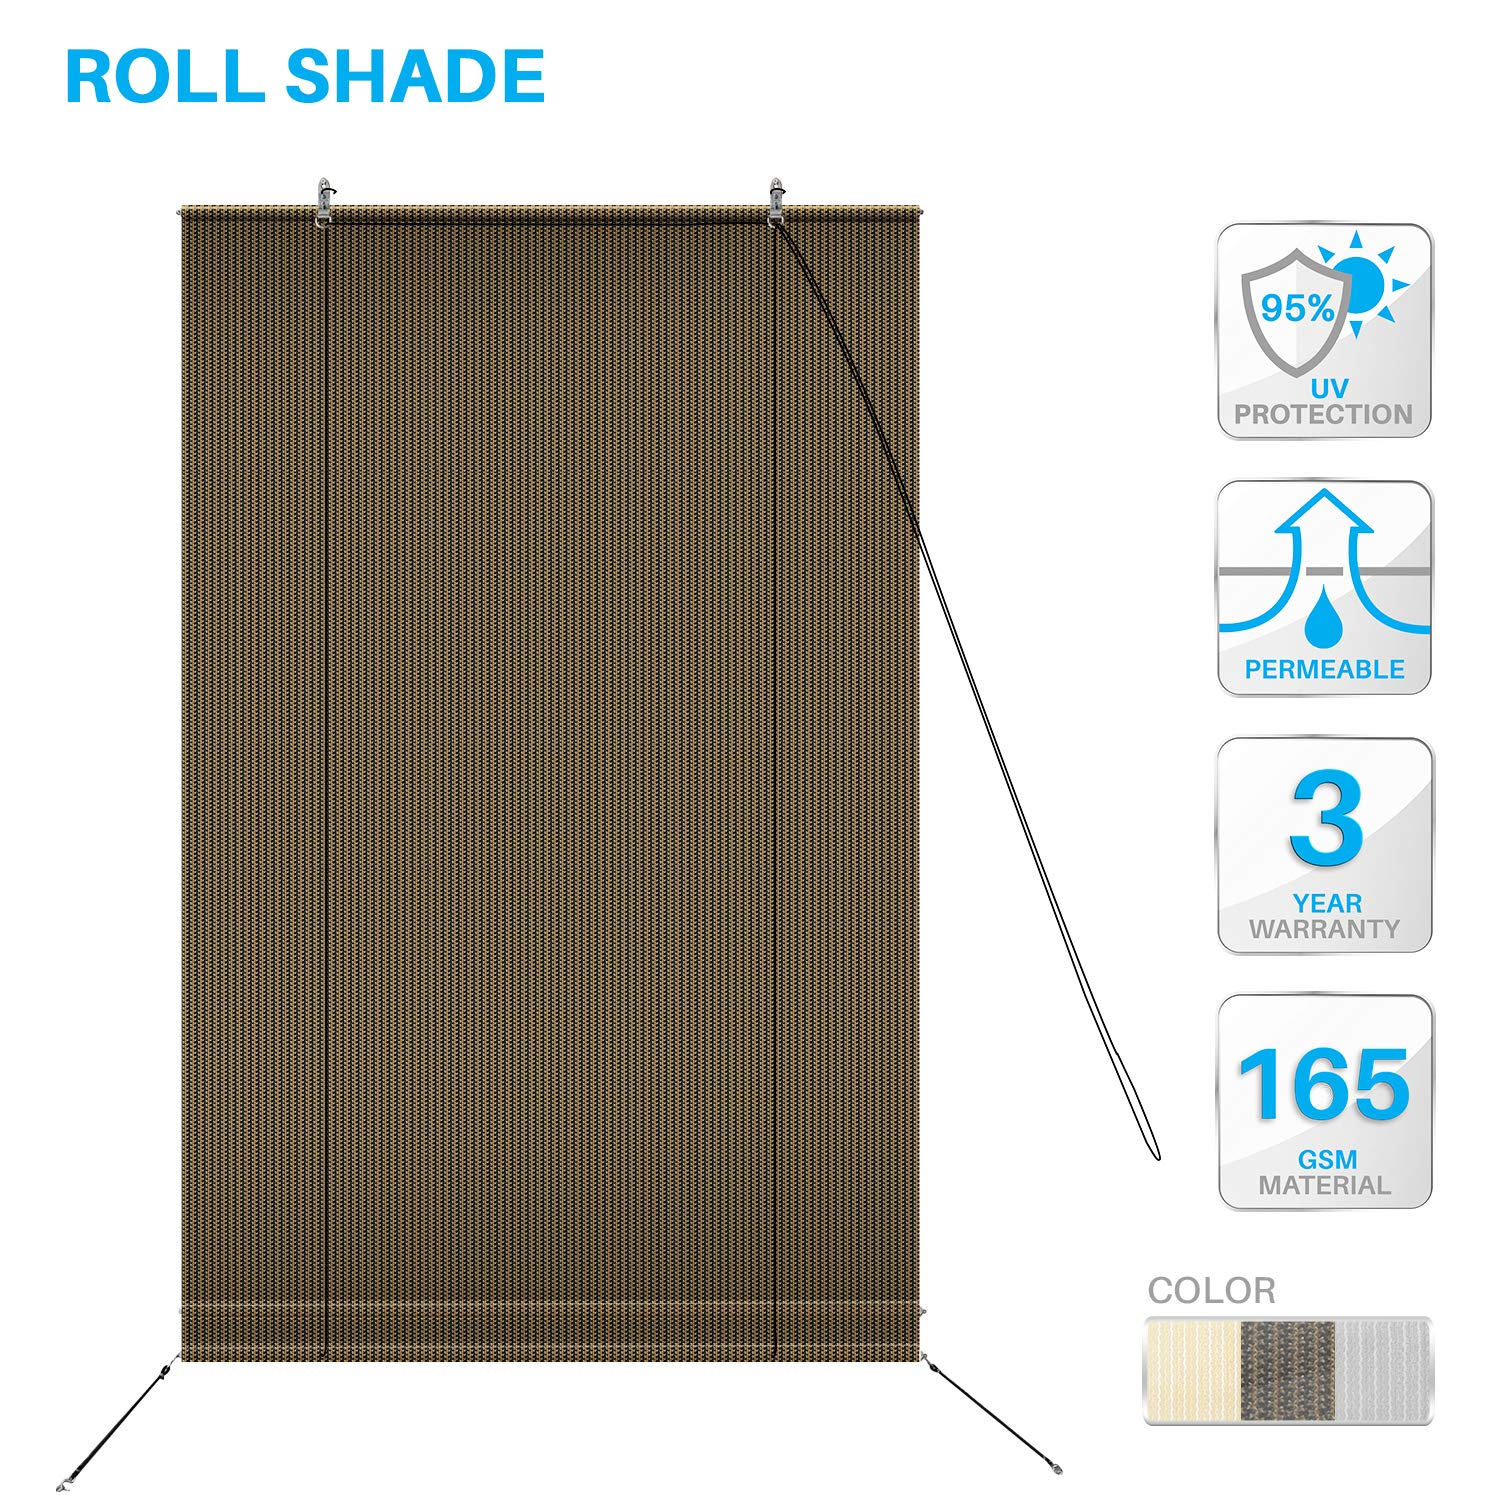 PATIO Paradise Roll up Shades Roller Shade 7'Wx5'H Outdoor Shade Blind Pull Shade Privacy Screen Porch Deck Balcony Pergola Trellis Carport Brown